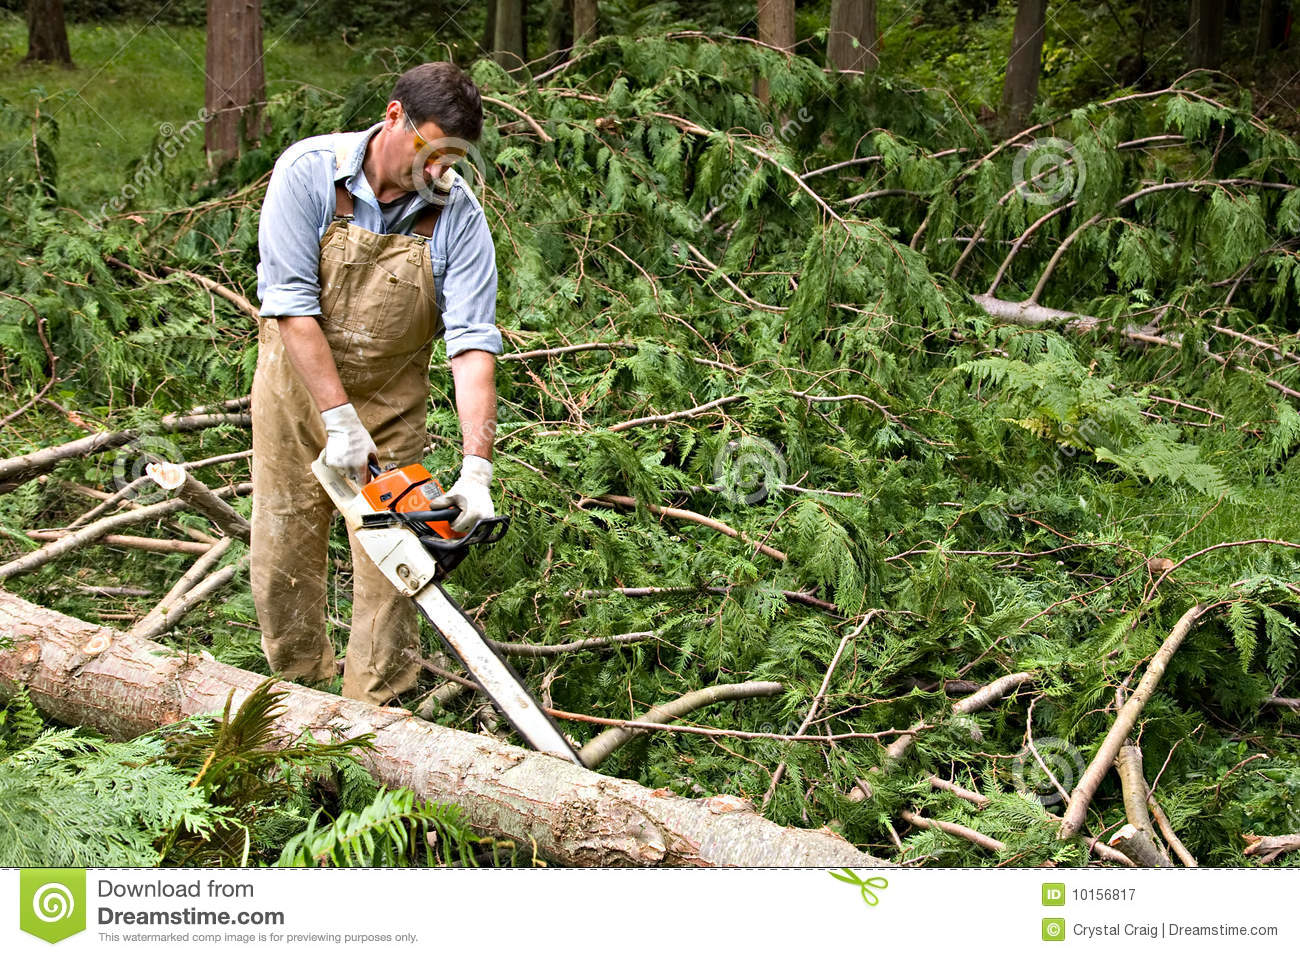 Man limbing downed trees